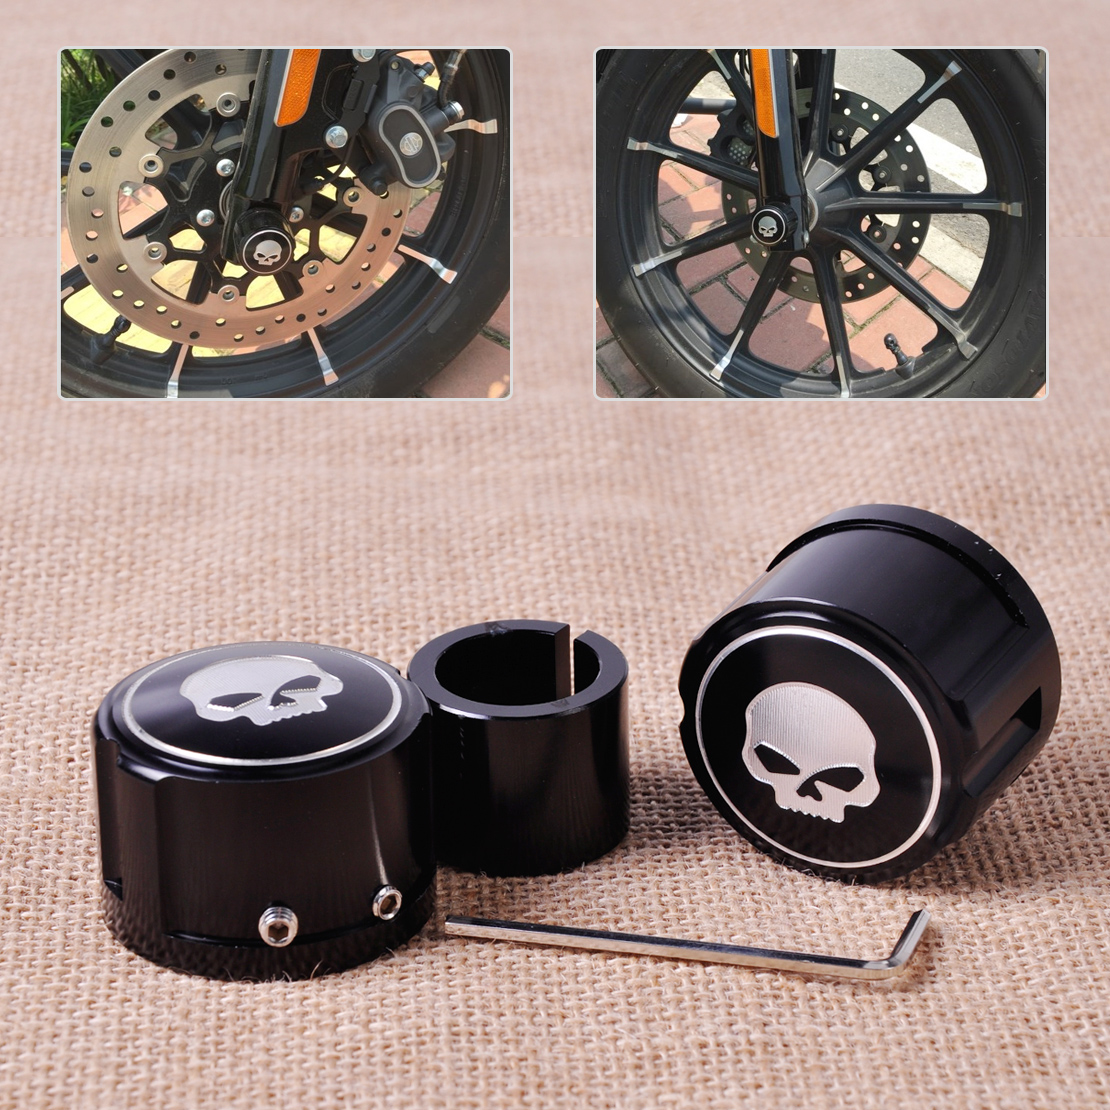 CITALL 2pcs Aluminum Motorcycle Front Skull Axle Nut Cover Cap Bolt Kit for Harley VRSC XG XL Touring Trike model Softail Dyna